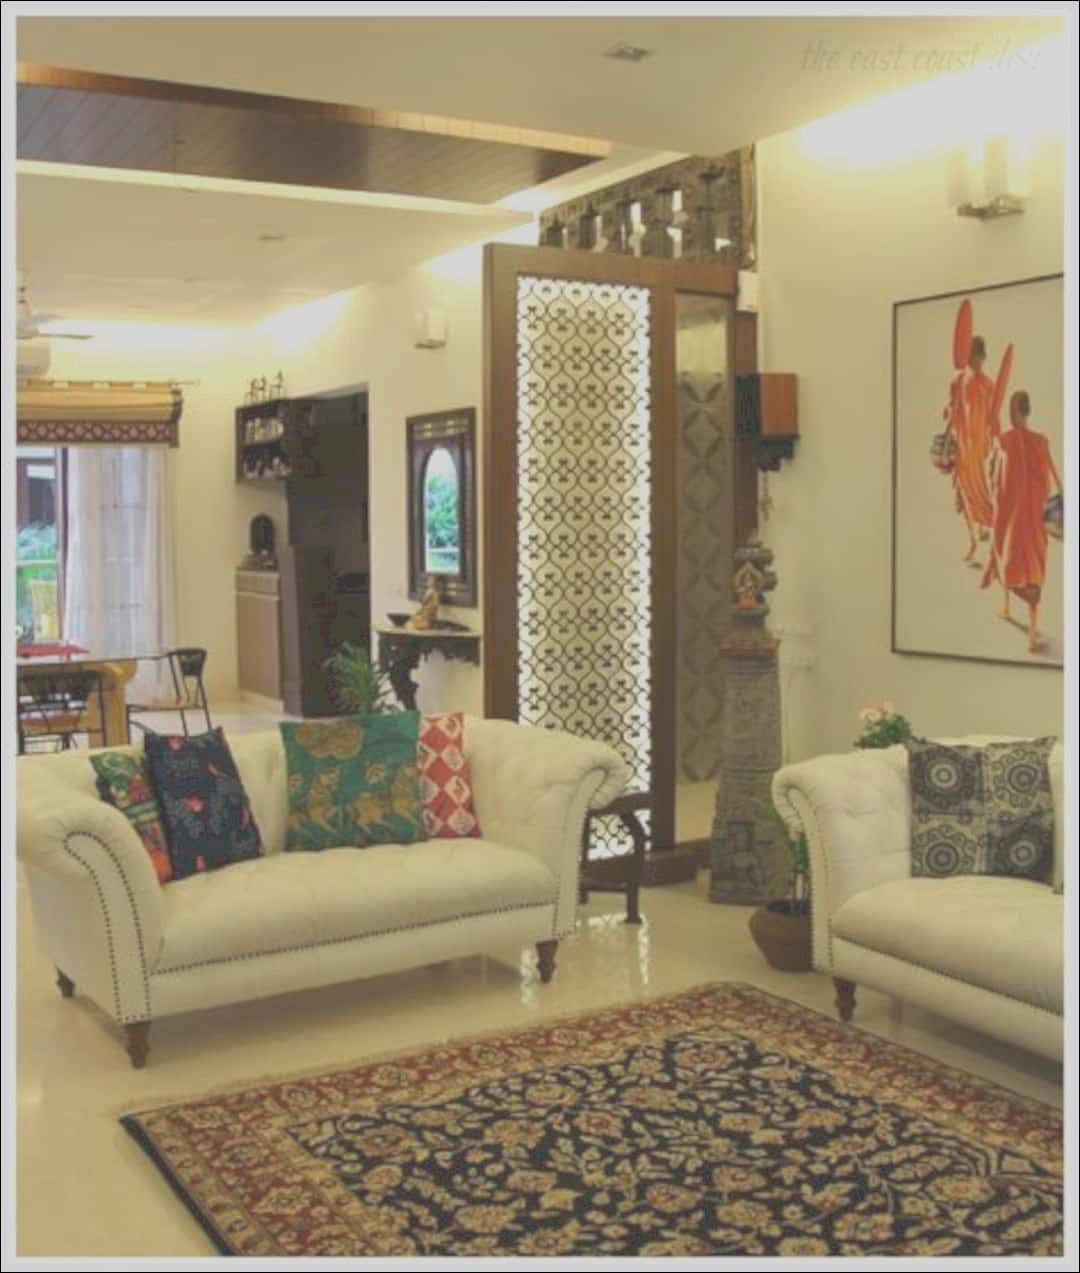 15 Loveable Interior Design Ideas Indian Style Gallery In